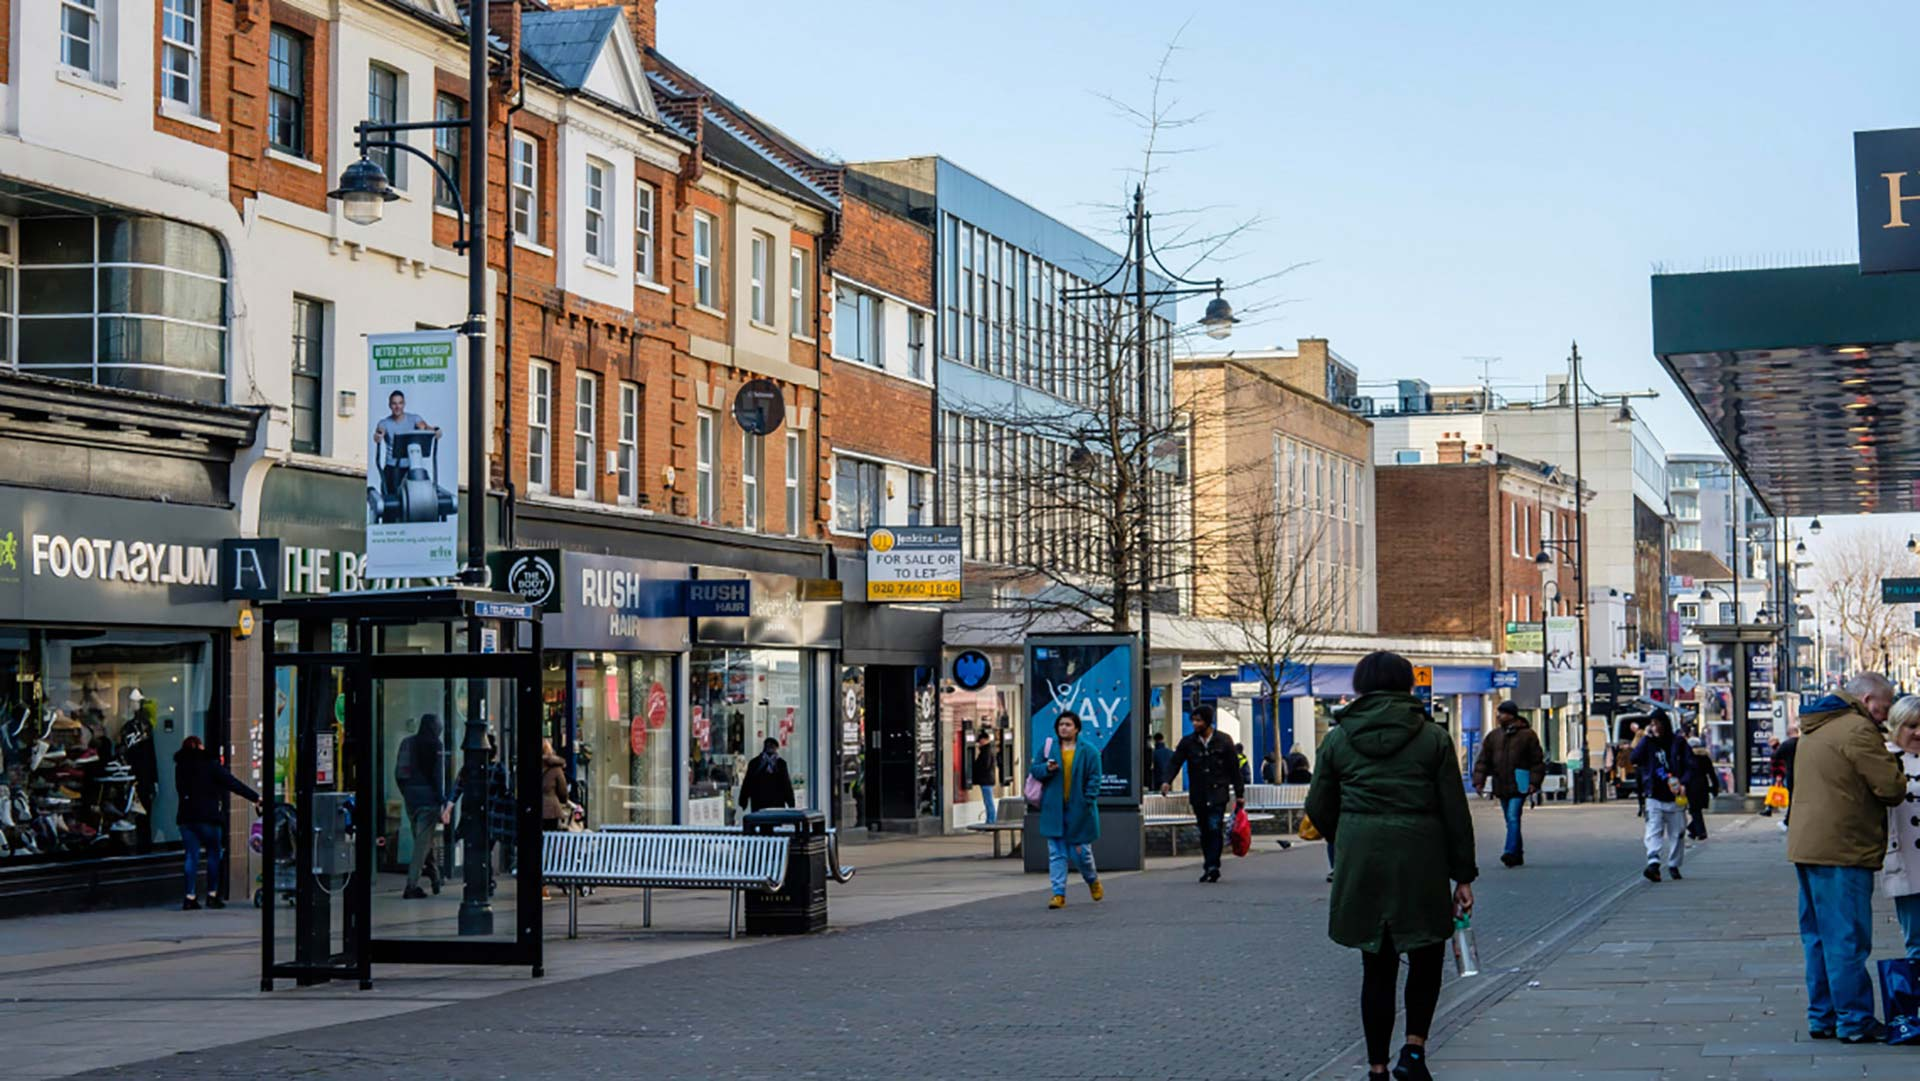 Panorama to illustrate dating in romford